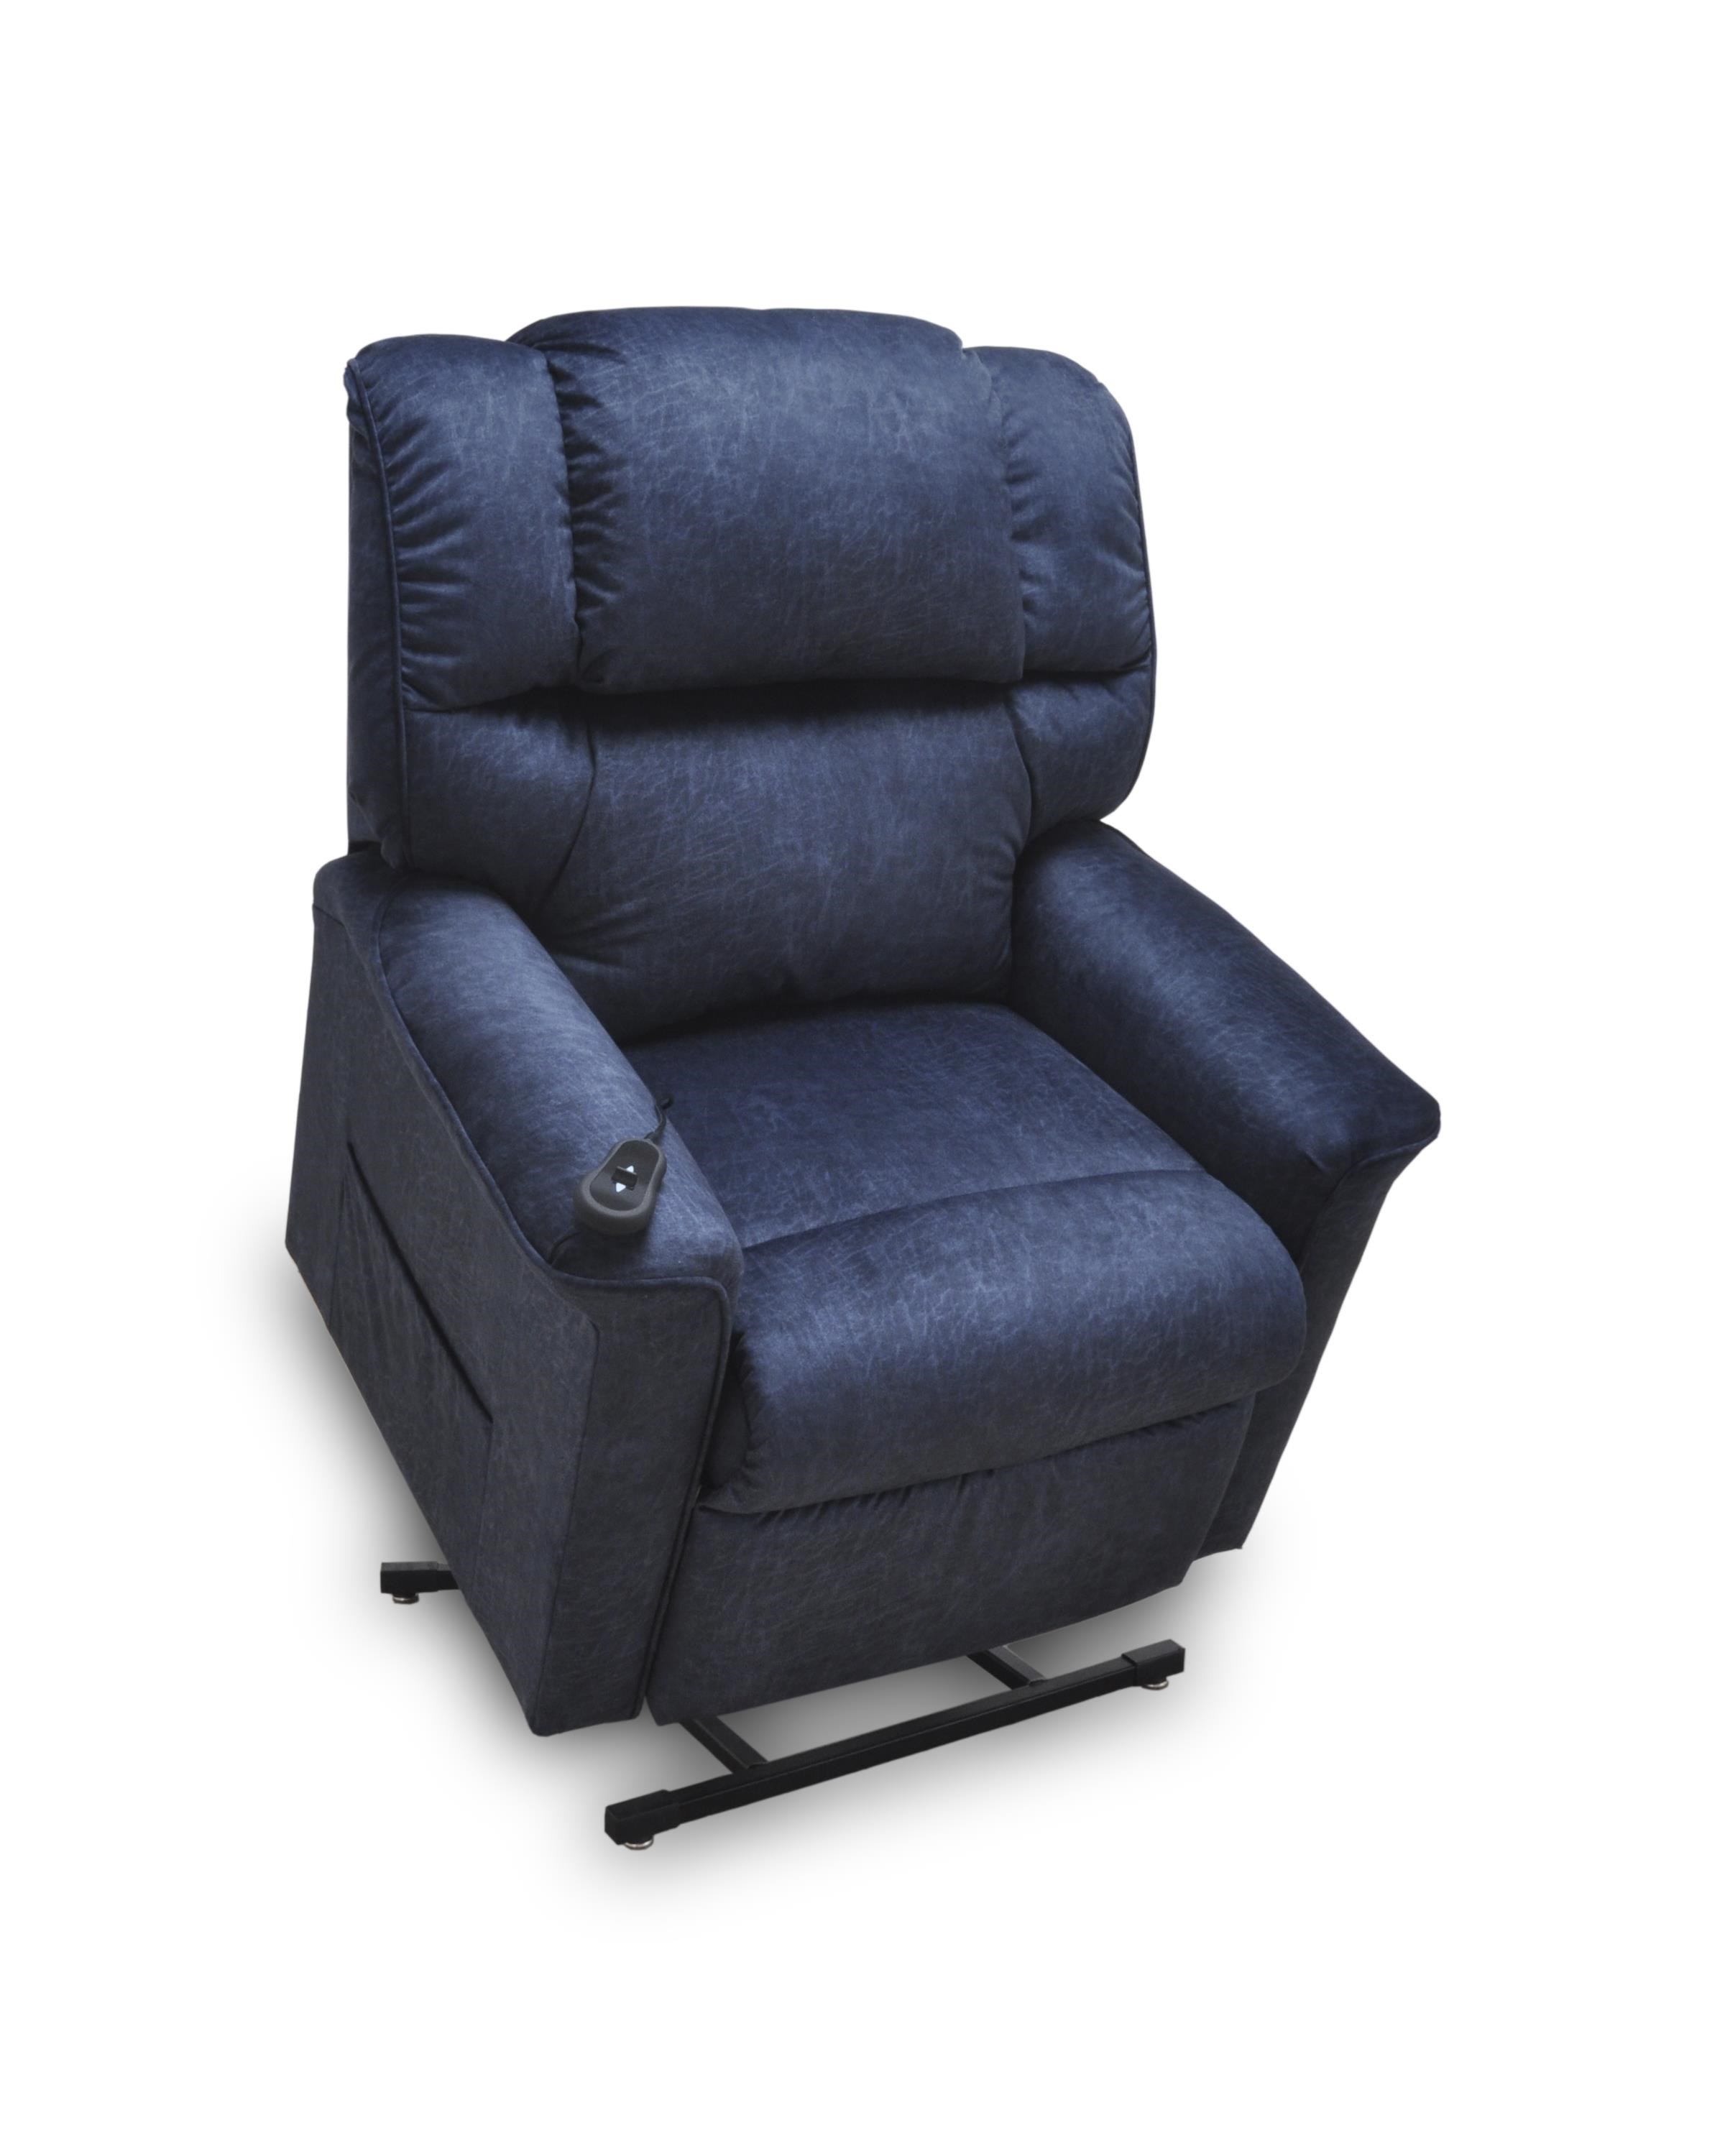 Franklin Lift and Power Recliners Oscar Lift Chair - Item Number 485 1614-15  sc 1 st  Great American Home Store & Franklin Lift and Power Recliners Oscar Lift Chair - Great ... islam-shia.org